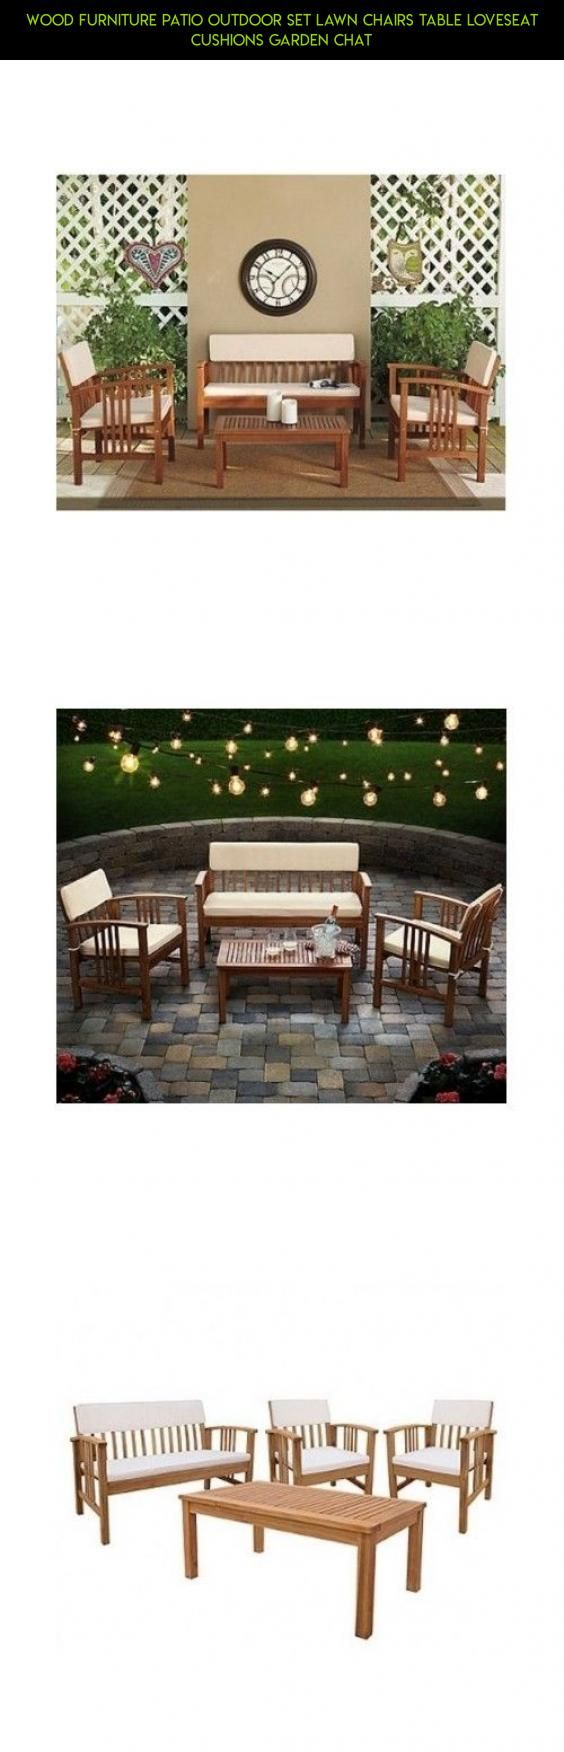 Wood Furniture Patio Outdoor Set Lawn Chairs Table Loveseat Cushions Garden Chat #camera #patio #cushions #shopping #products #plans #parts #tech #drone #fpv #furniture #gadgets #racing #technology #loveseat #kit